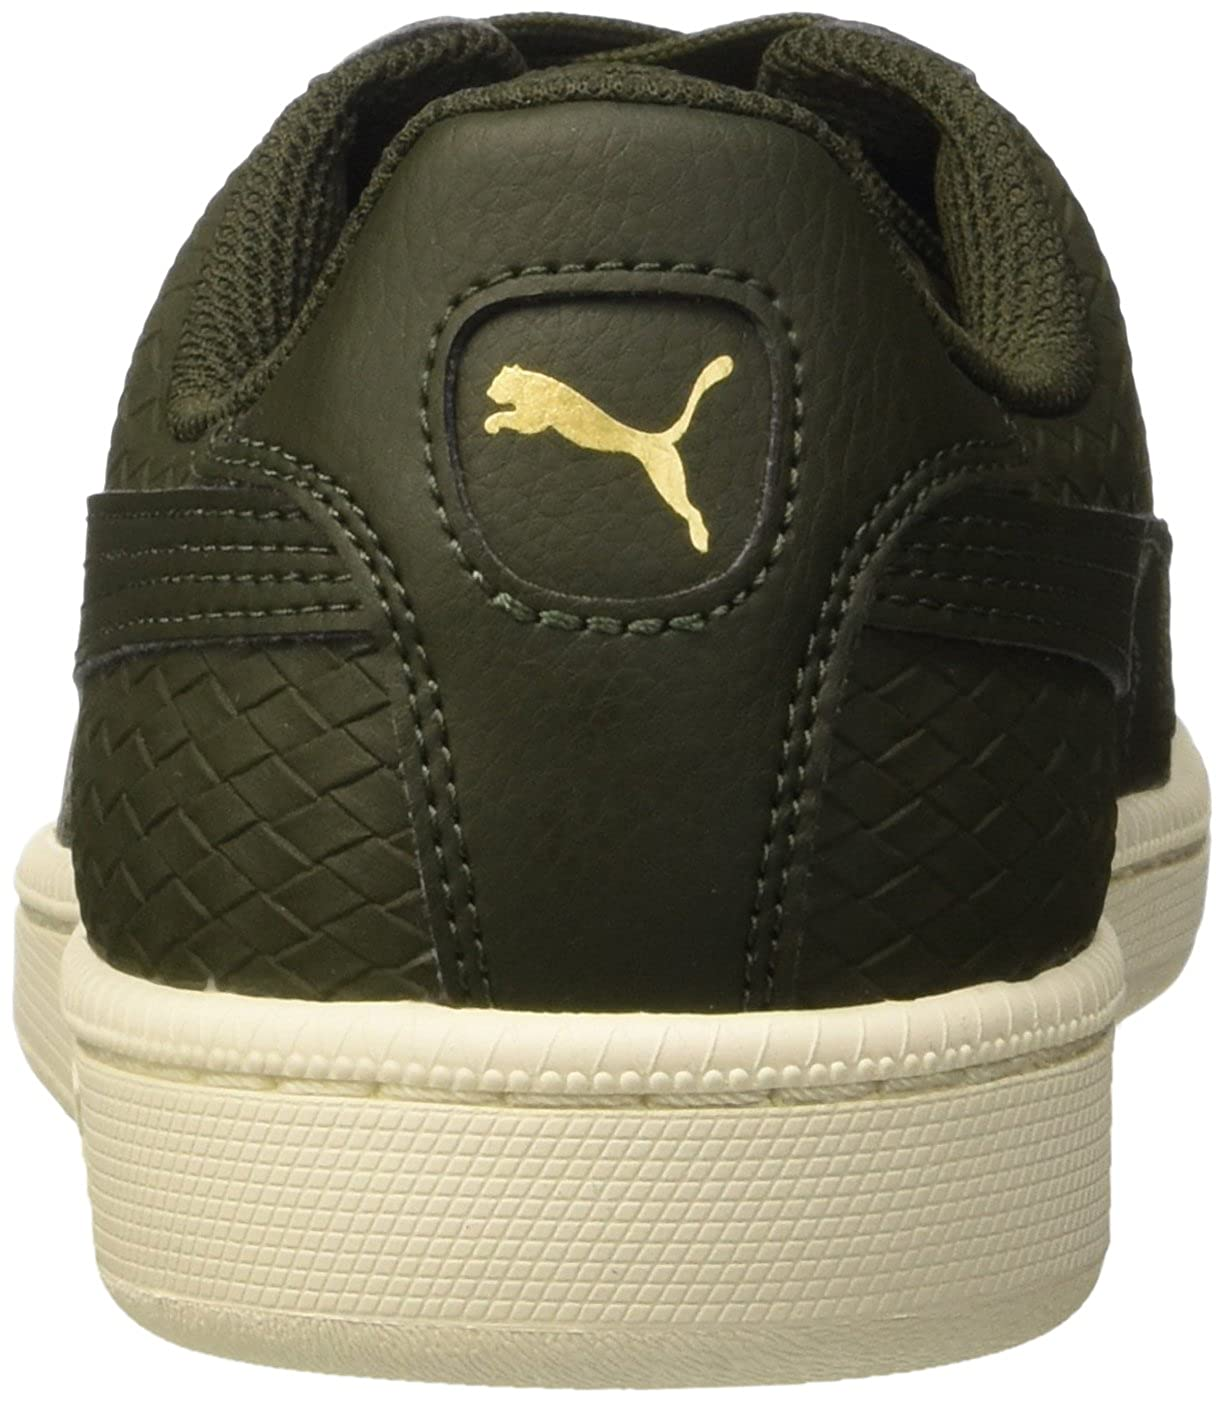 Puma Unisex Smash Woven Sneakers  Buy Online at Low Prices in India -  Amazon.in 1422d0ba6